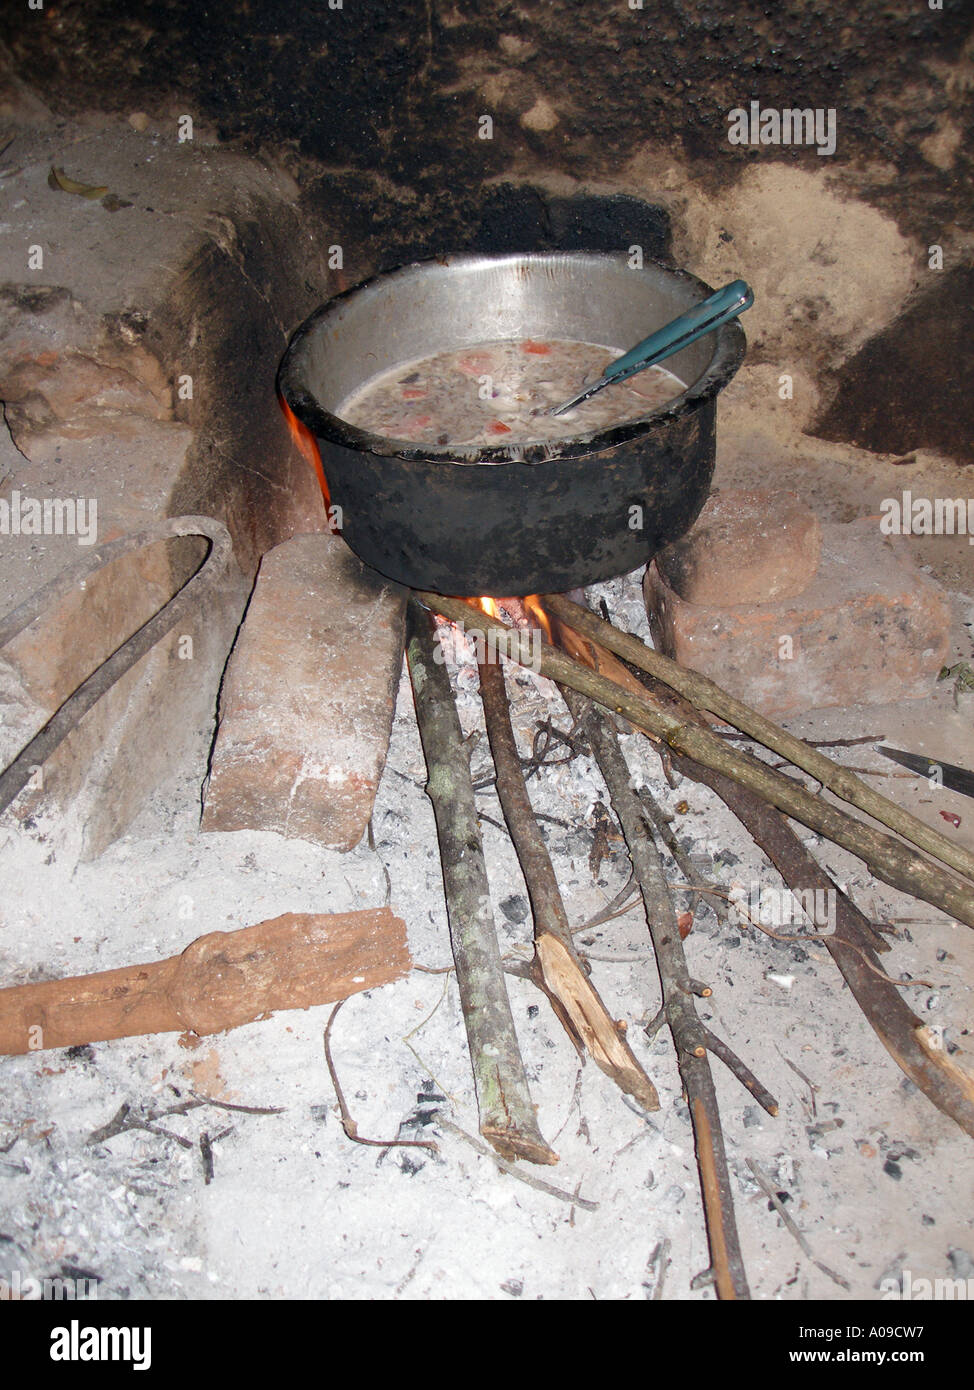 Boiling a broth on firewood - Stock Image